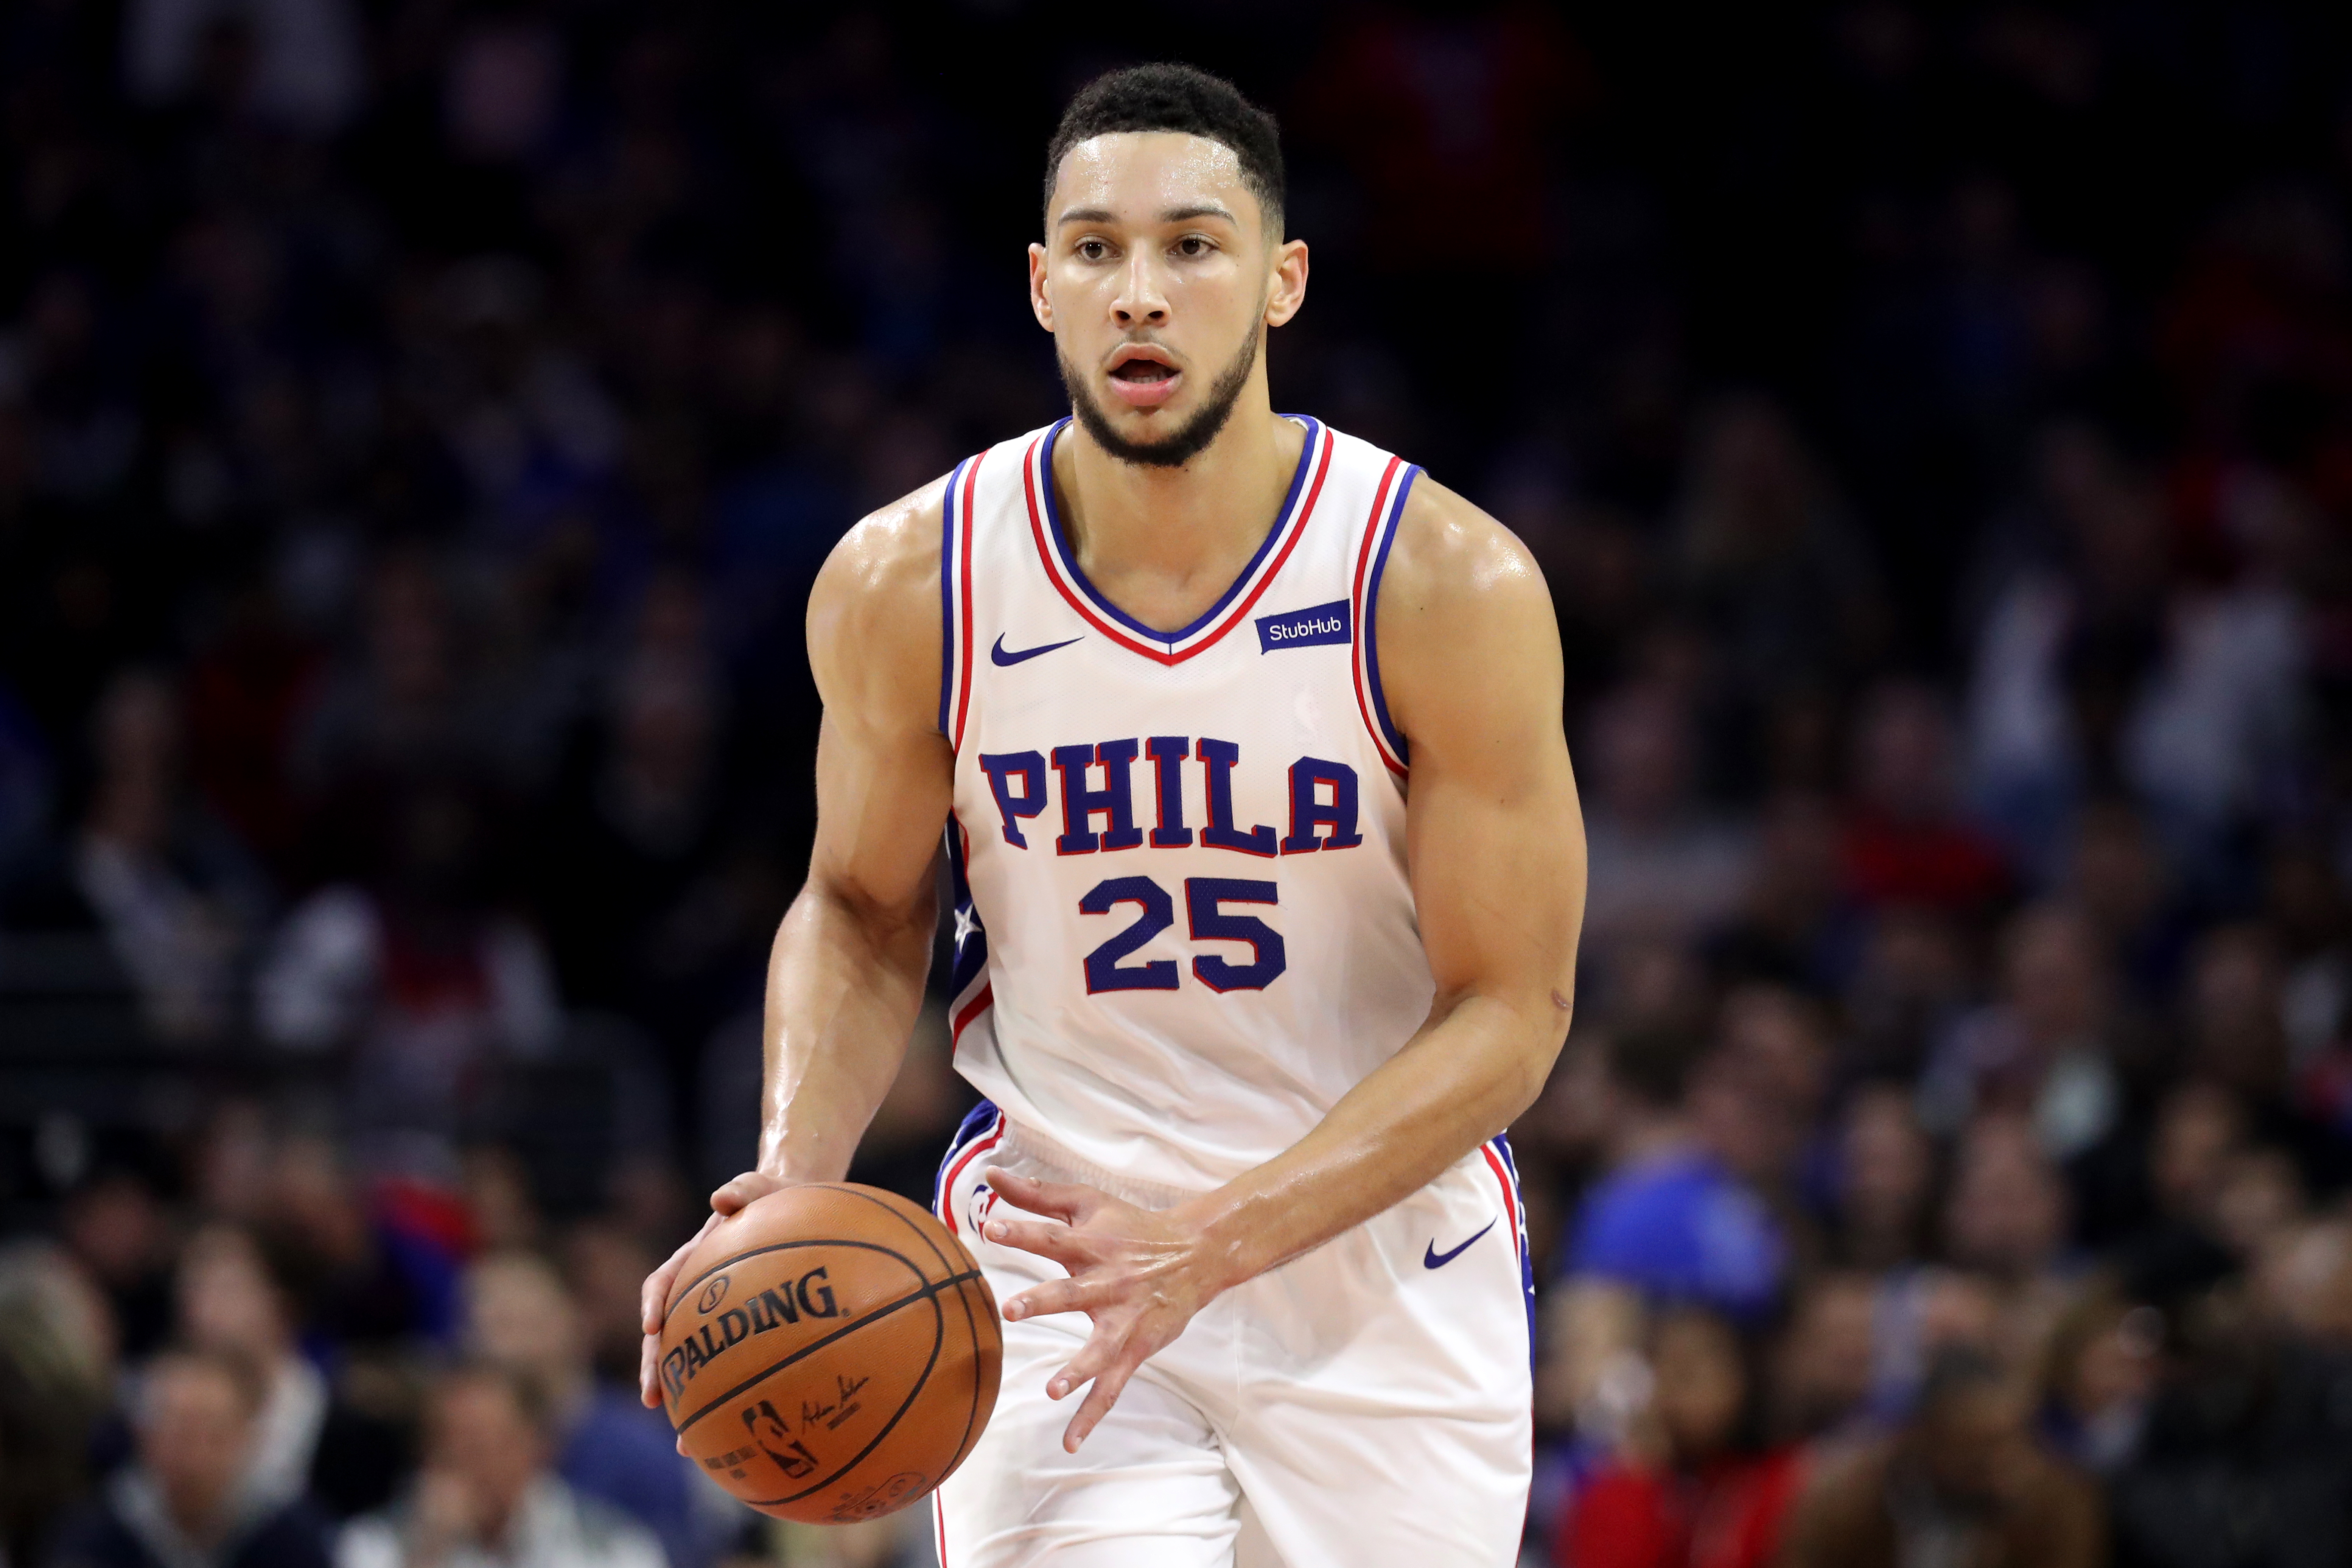 76ers' Ben Simmons, Raptors' Kyle Lowry involved in altercation after ejections